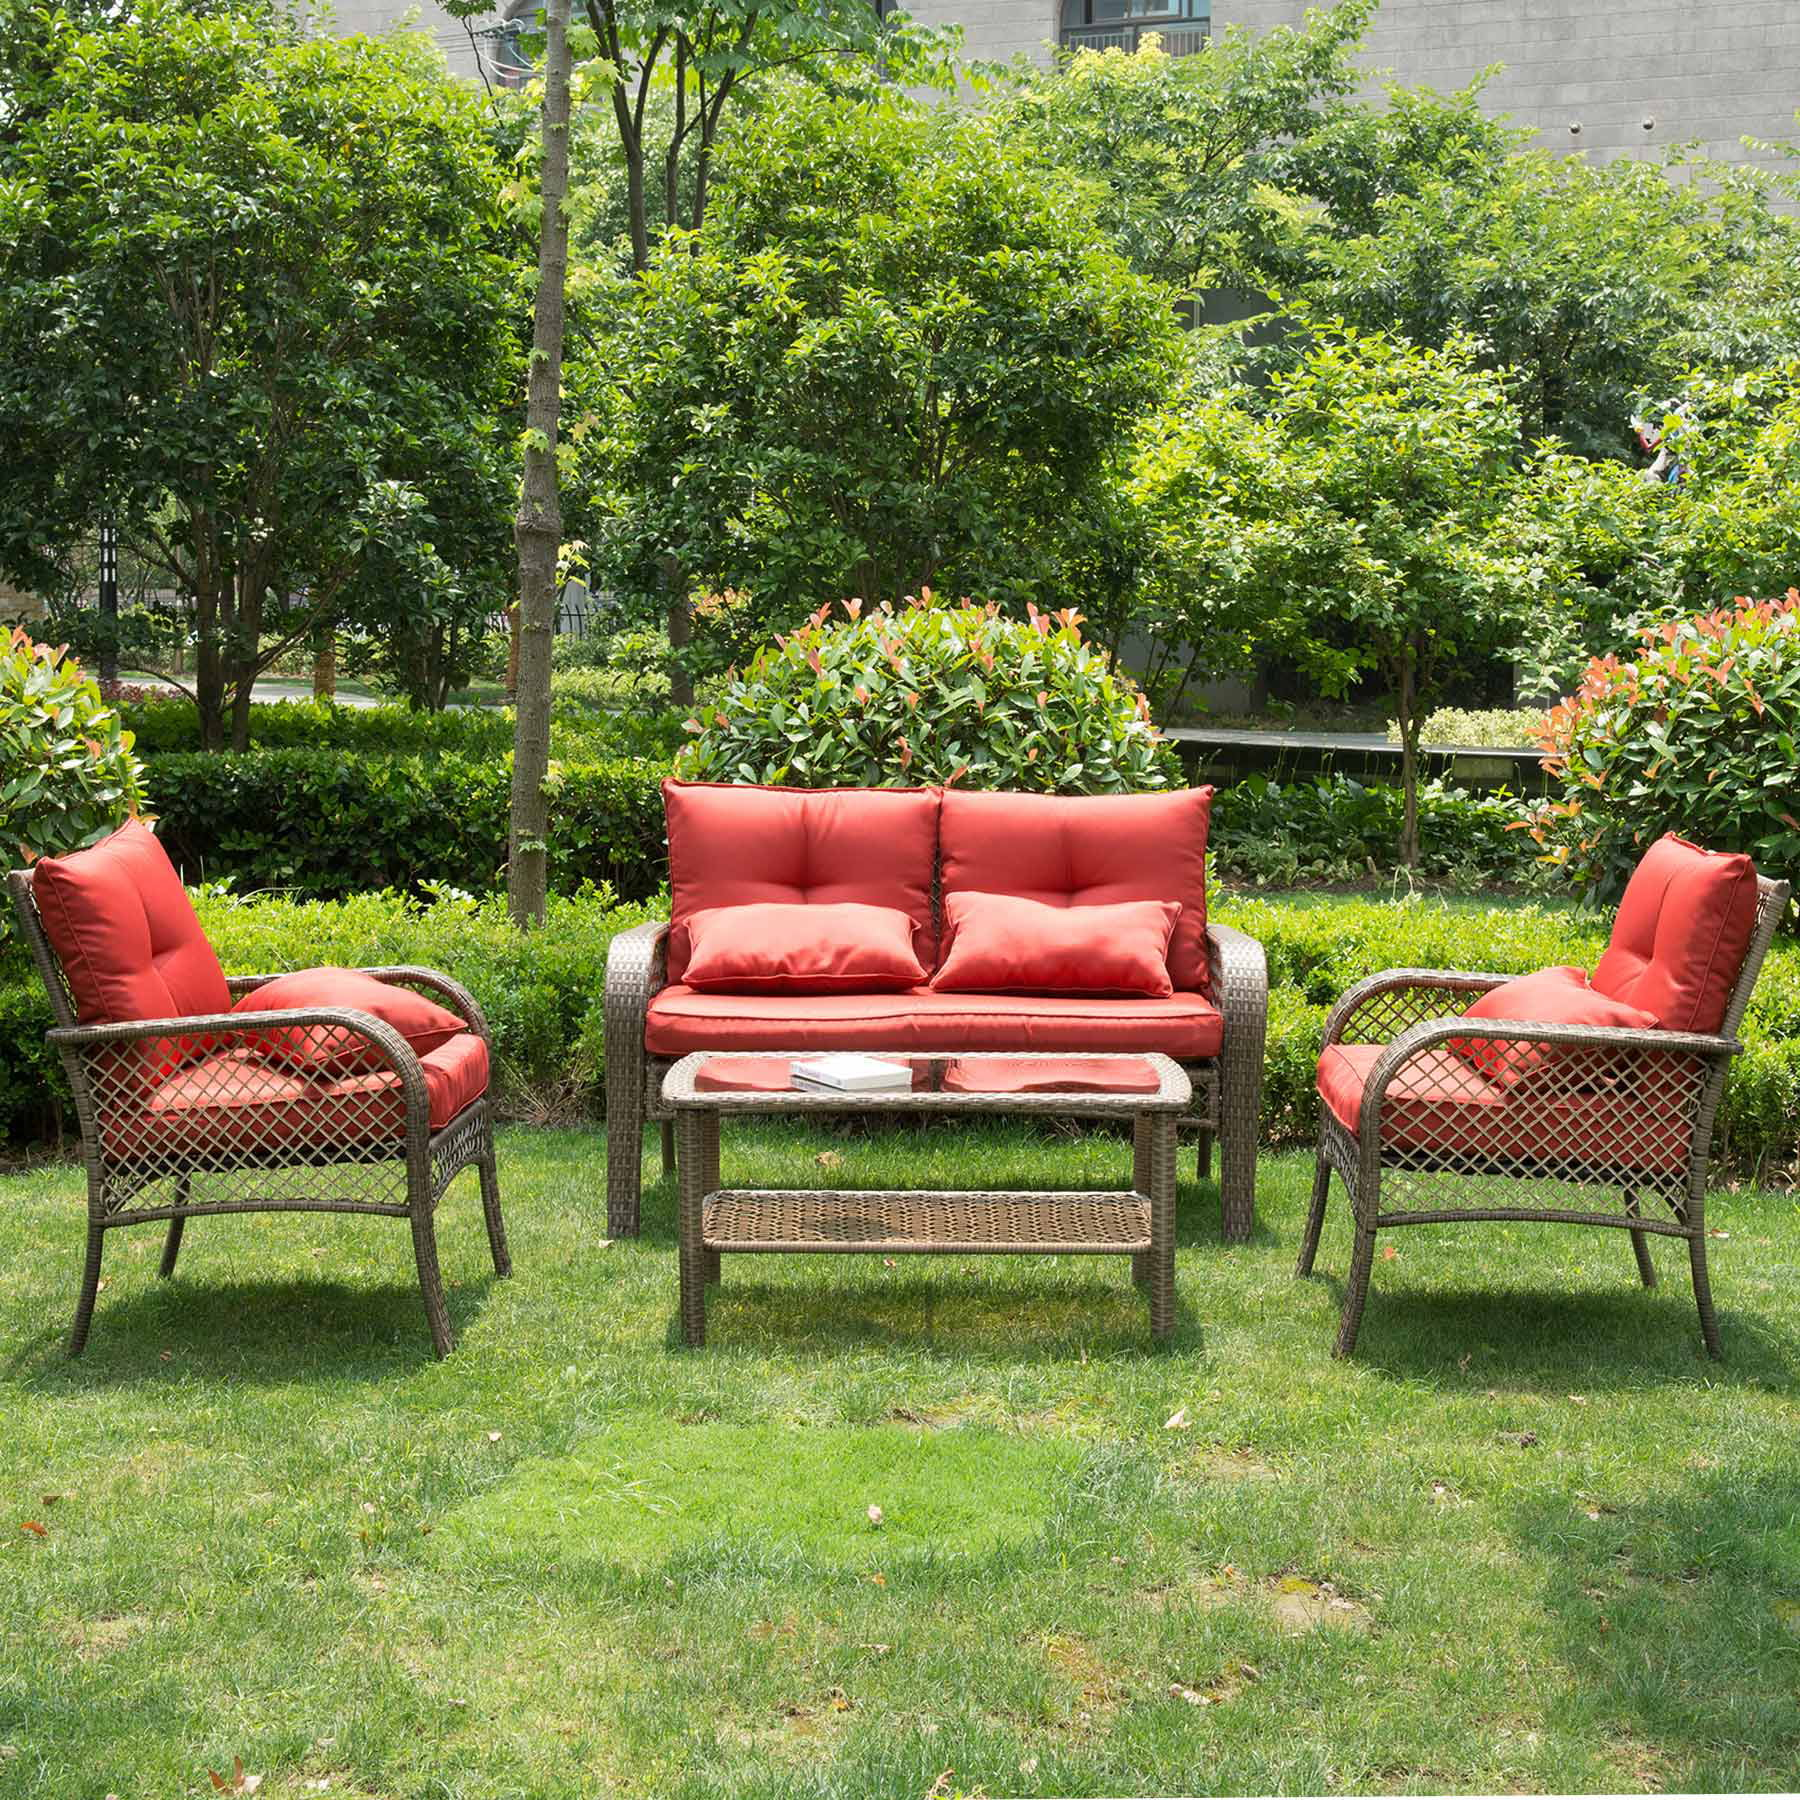 4 pcs all weather outdoor chairs with cushions pe rattan Backyard Outdoor Furniture id=42425